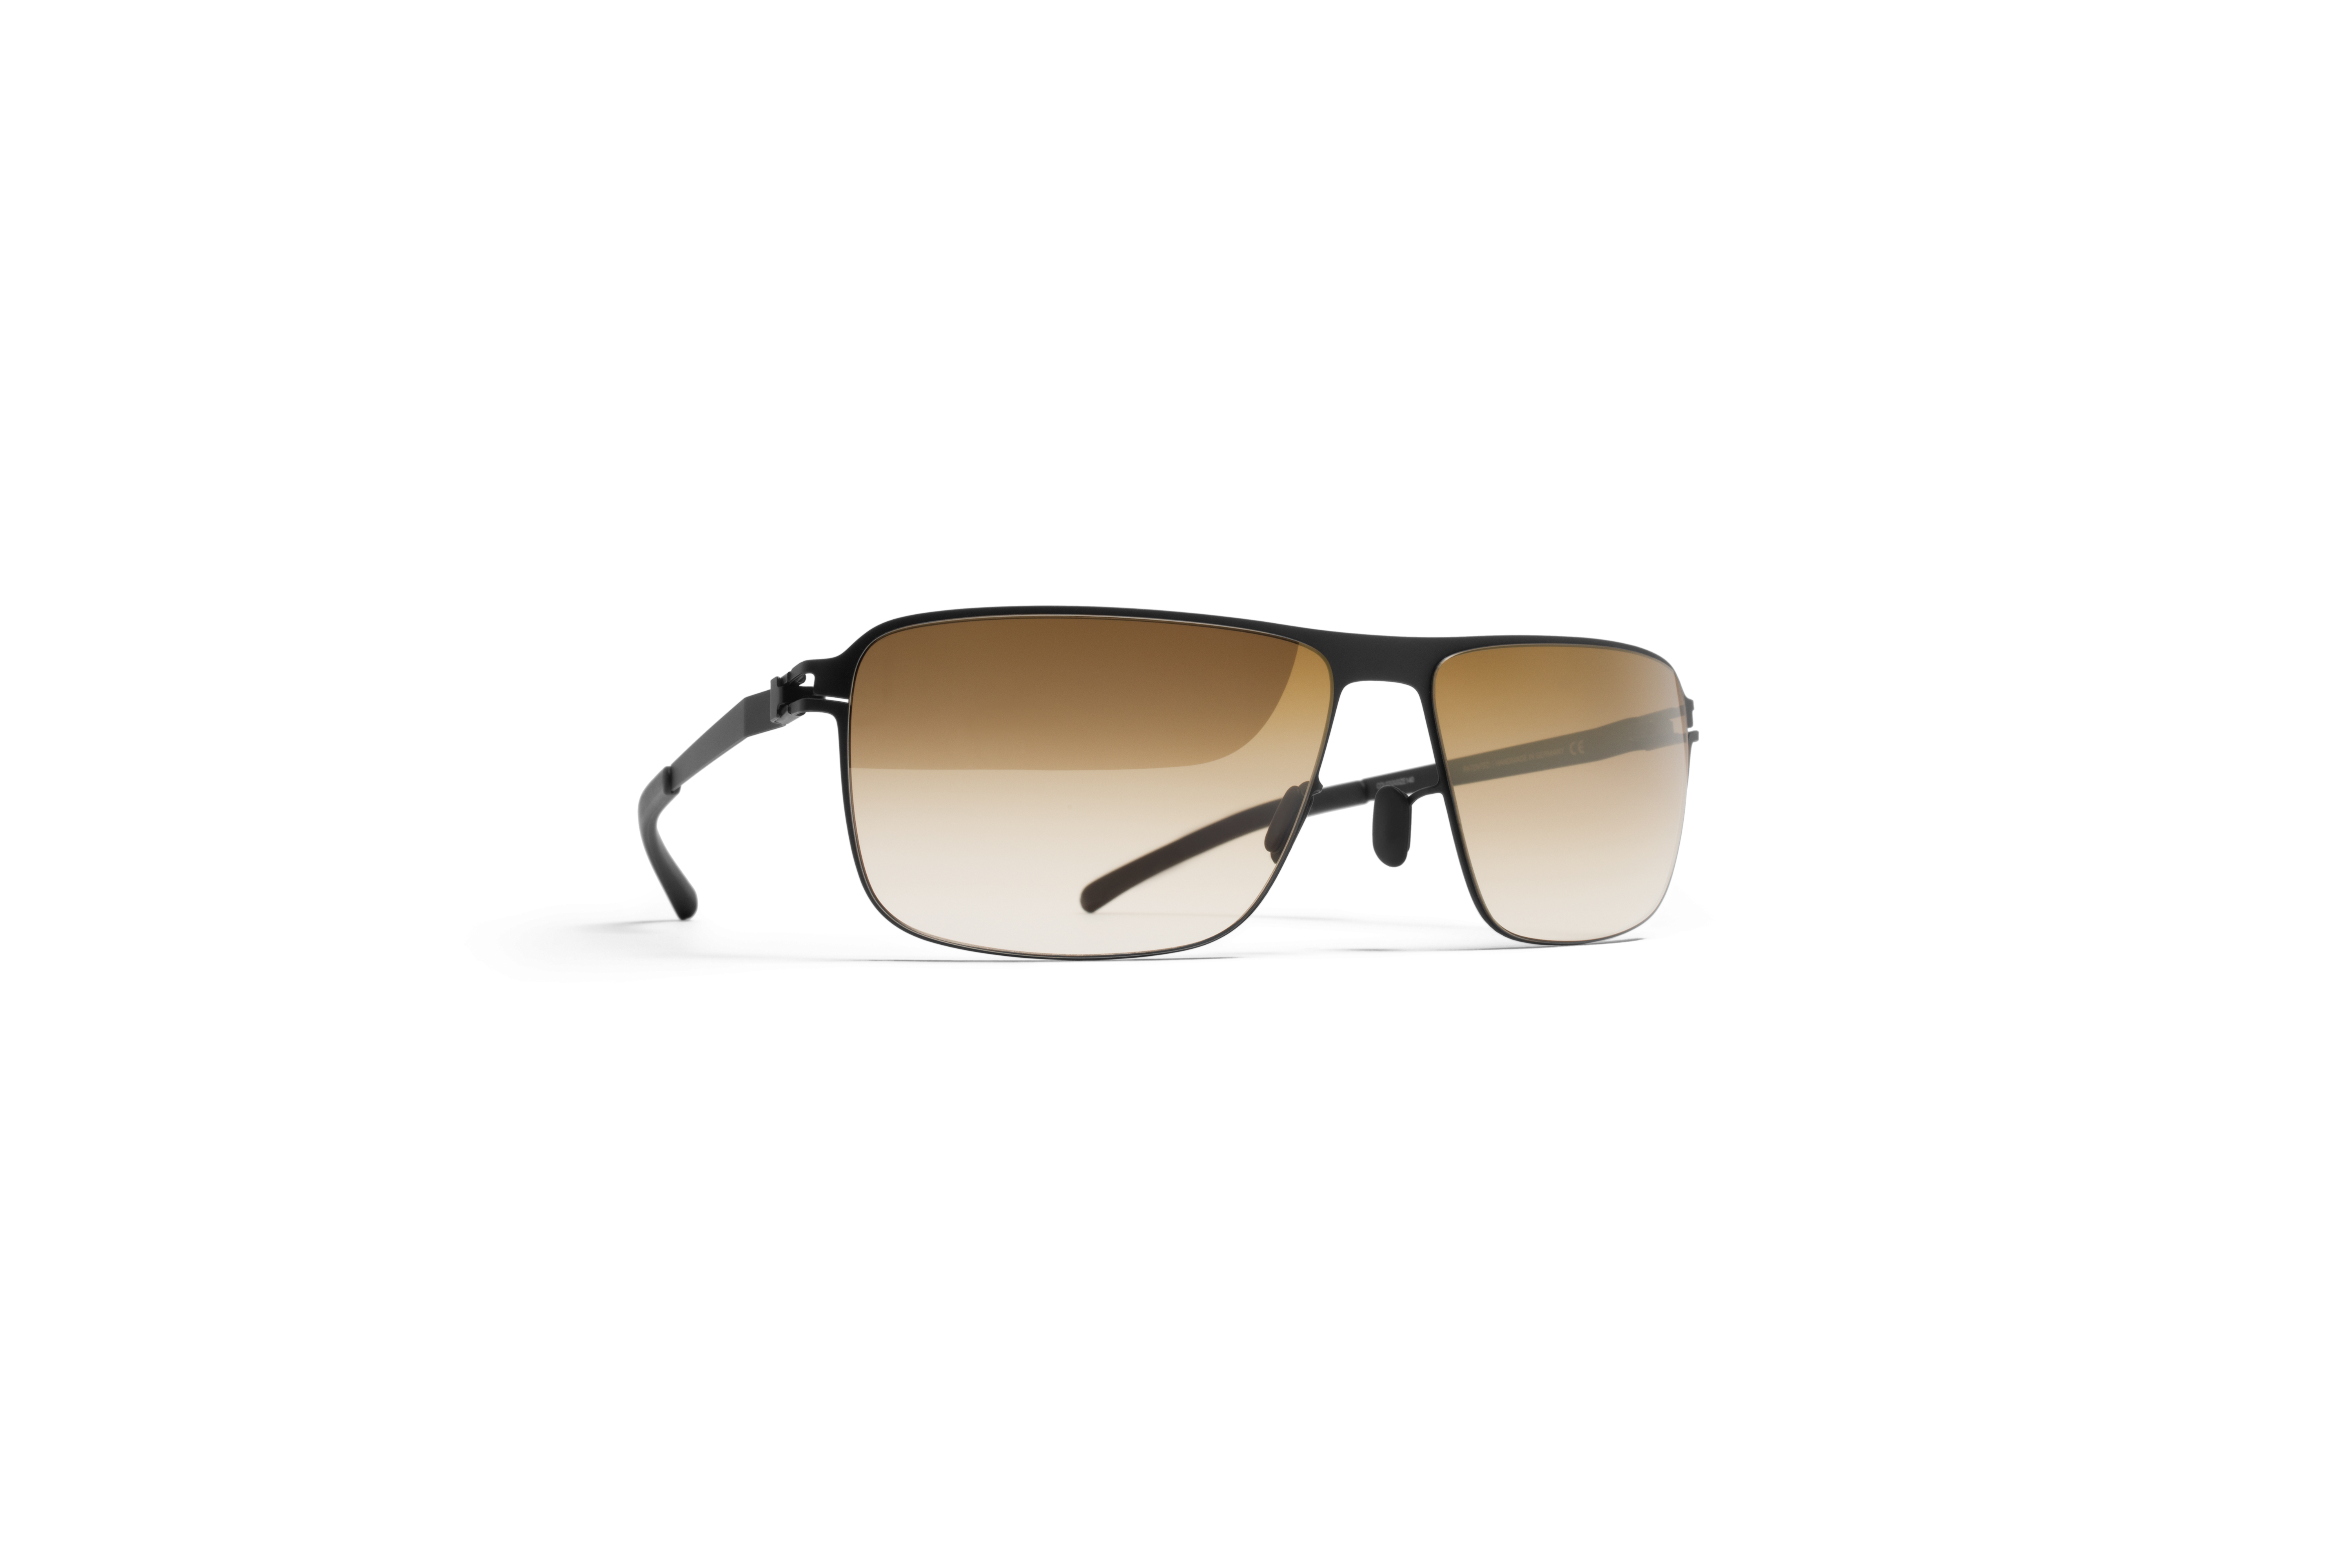 MYKITA No1 Sun Greyson Black Bronzegradientflas